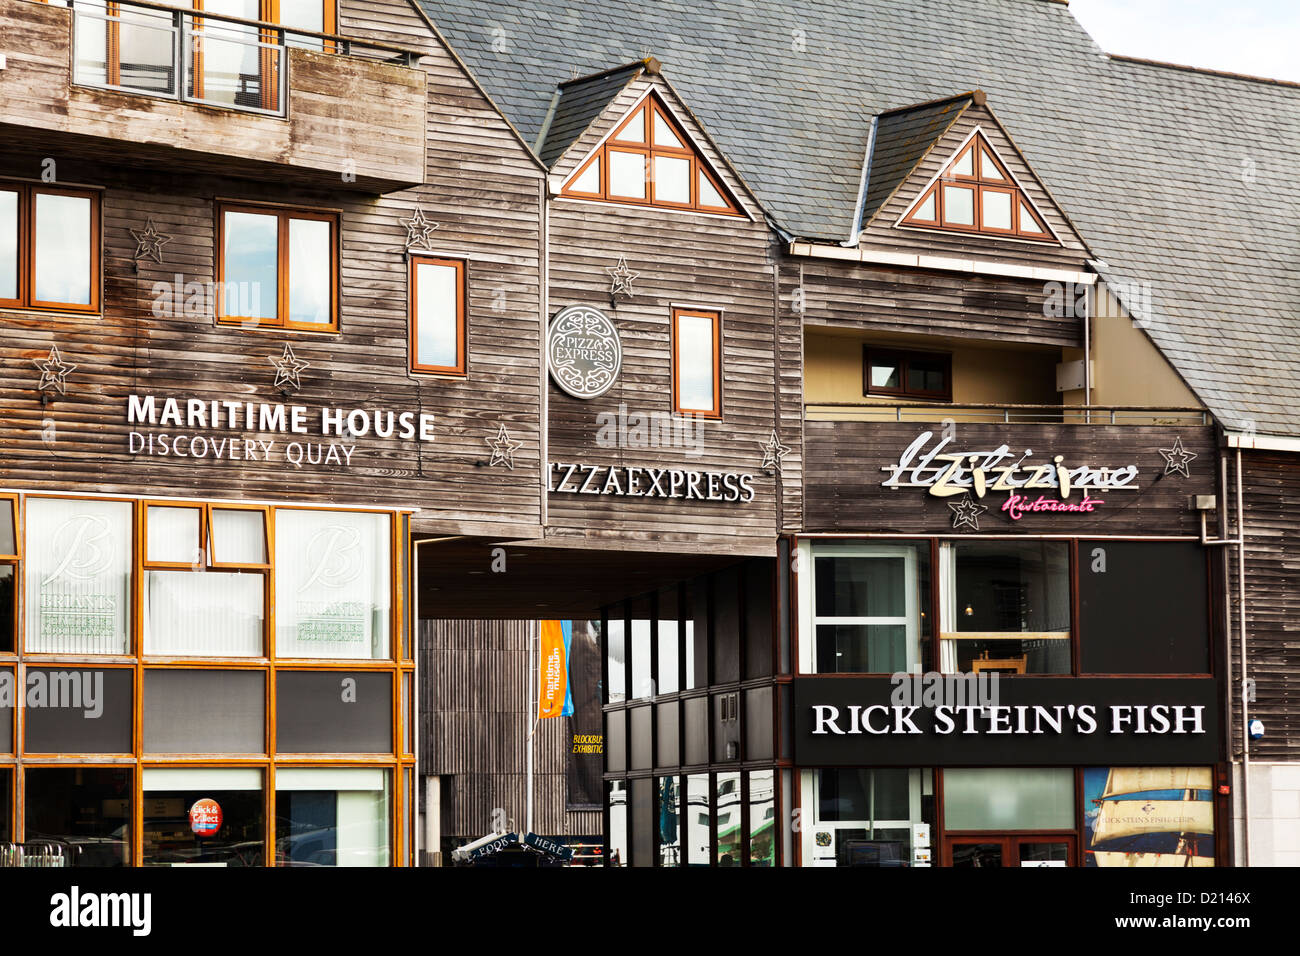 Rick Steins Fish Shop Next To Pizza Express And Maritime